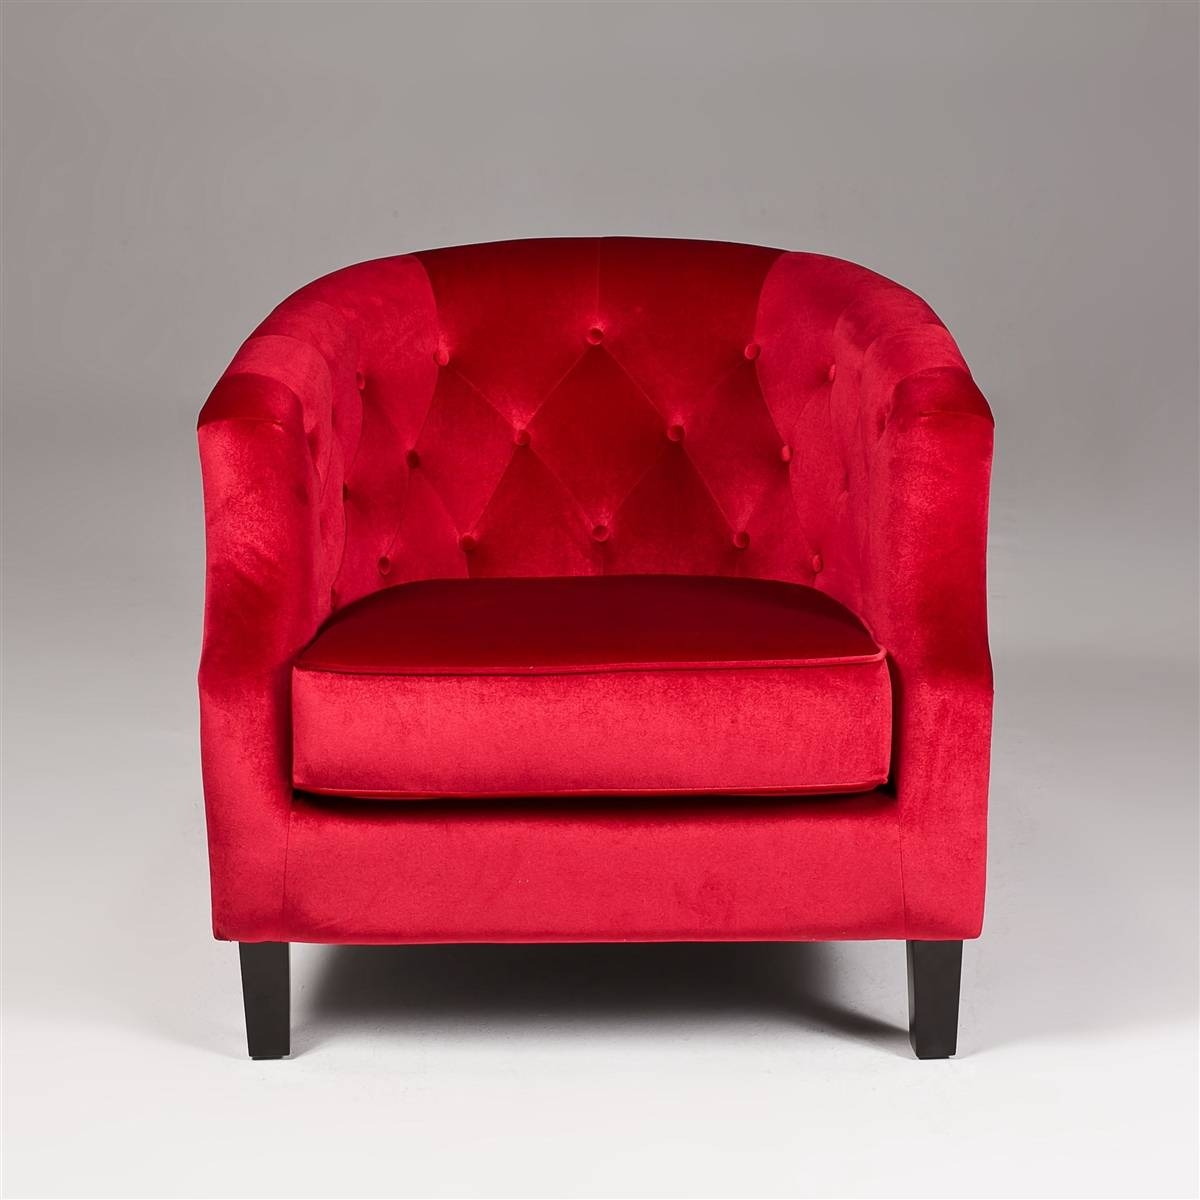 Red Sofas And Chairs | Tehranmix Decoration with regard to Red Sofas and Chairs (Image 20 of 30)